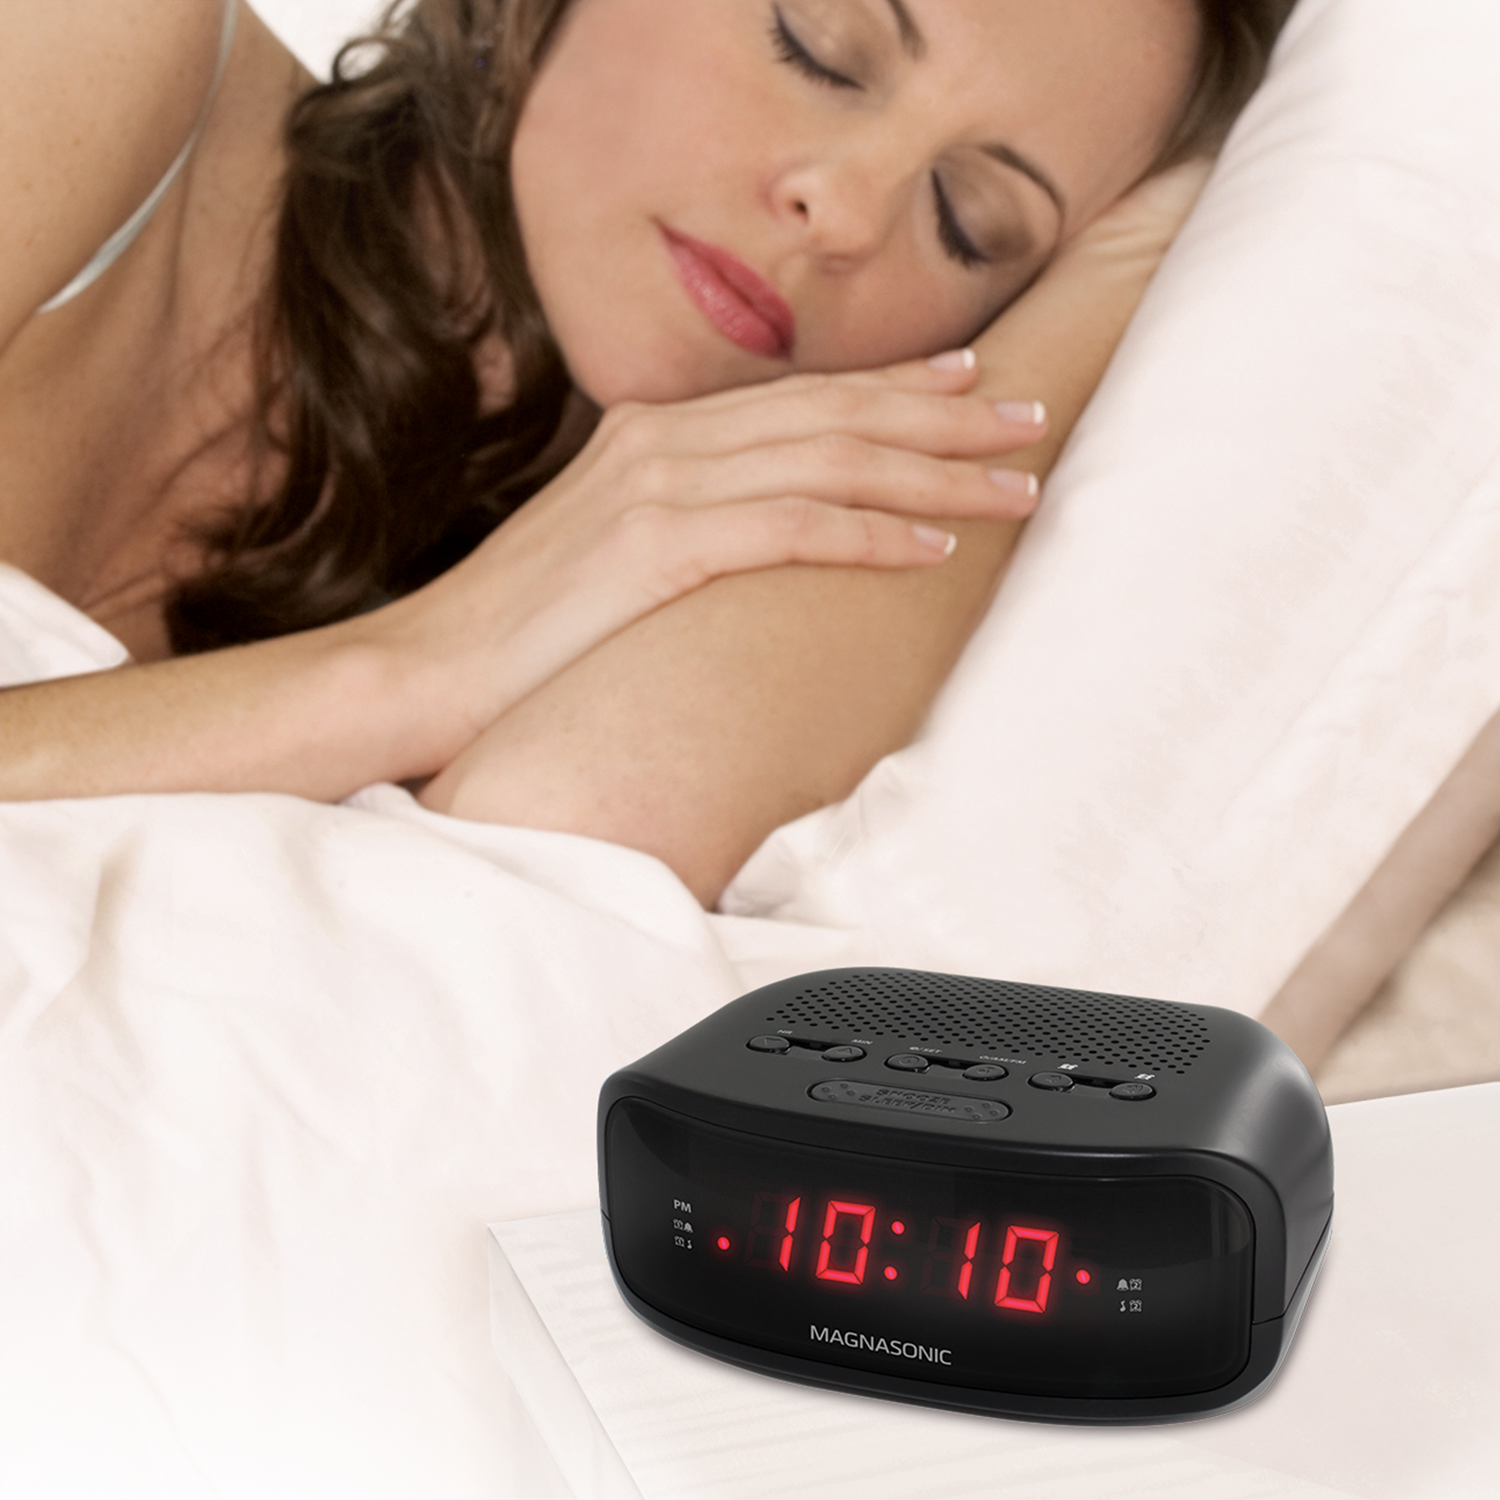 EAAC200 Digital AM/FM Clock Radio